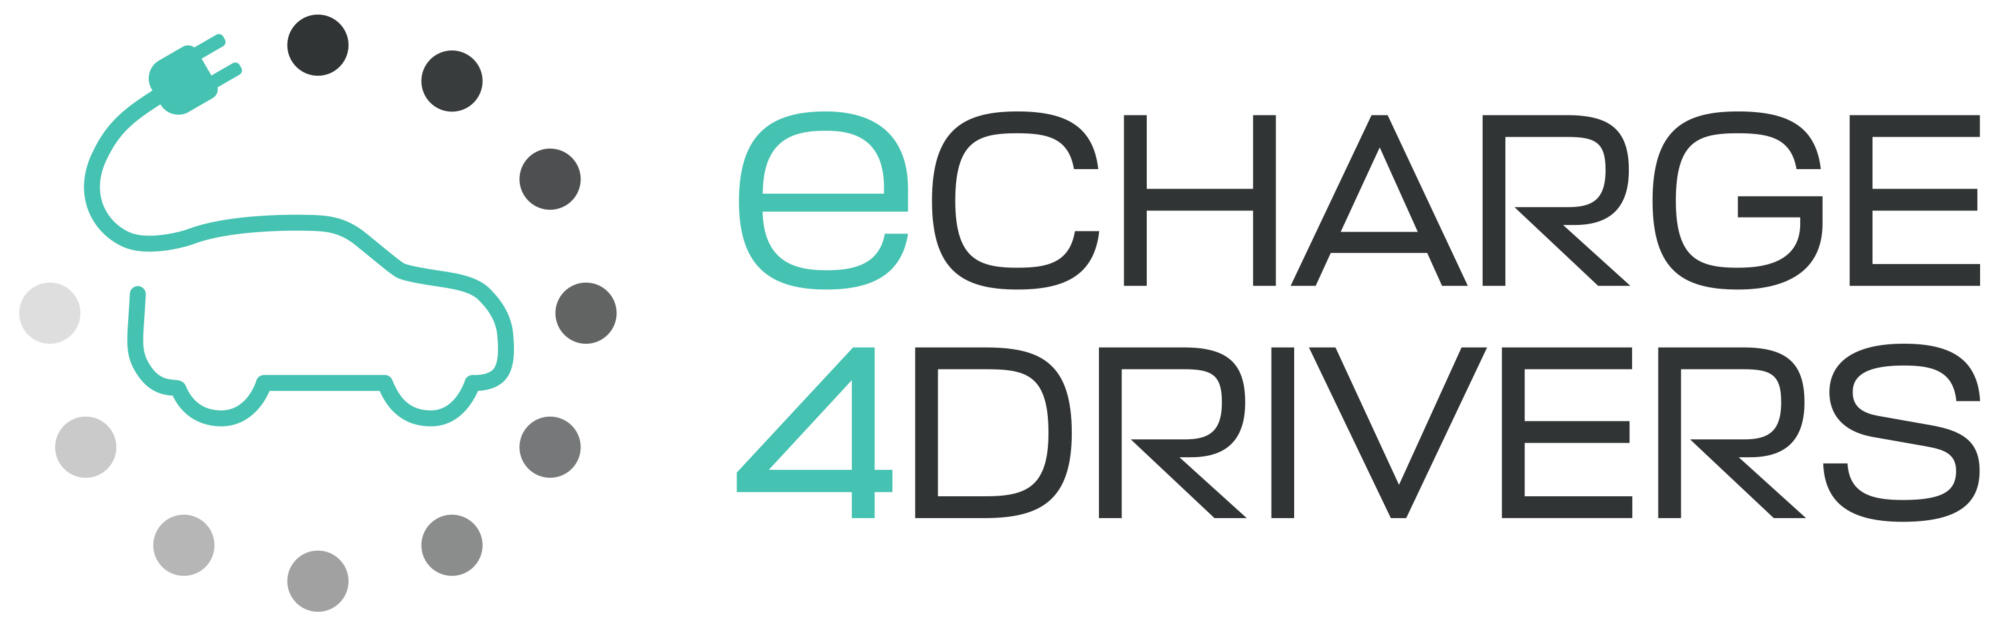 eCharge4Drivers opens survey on electric vehicle charging